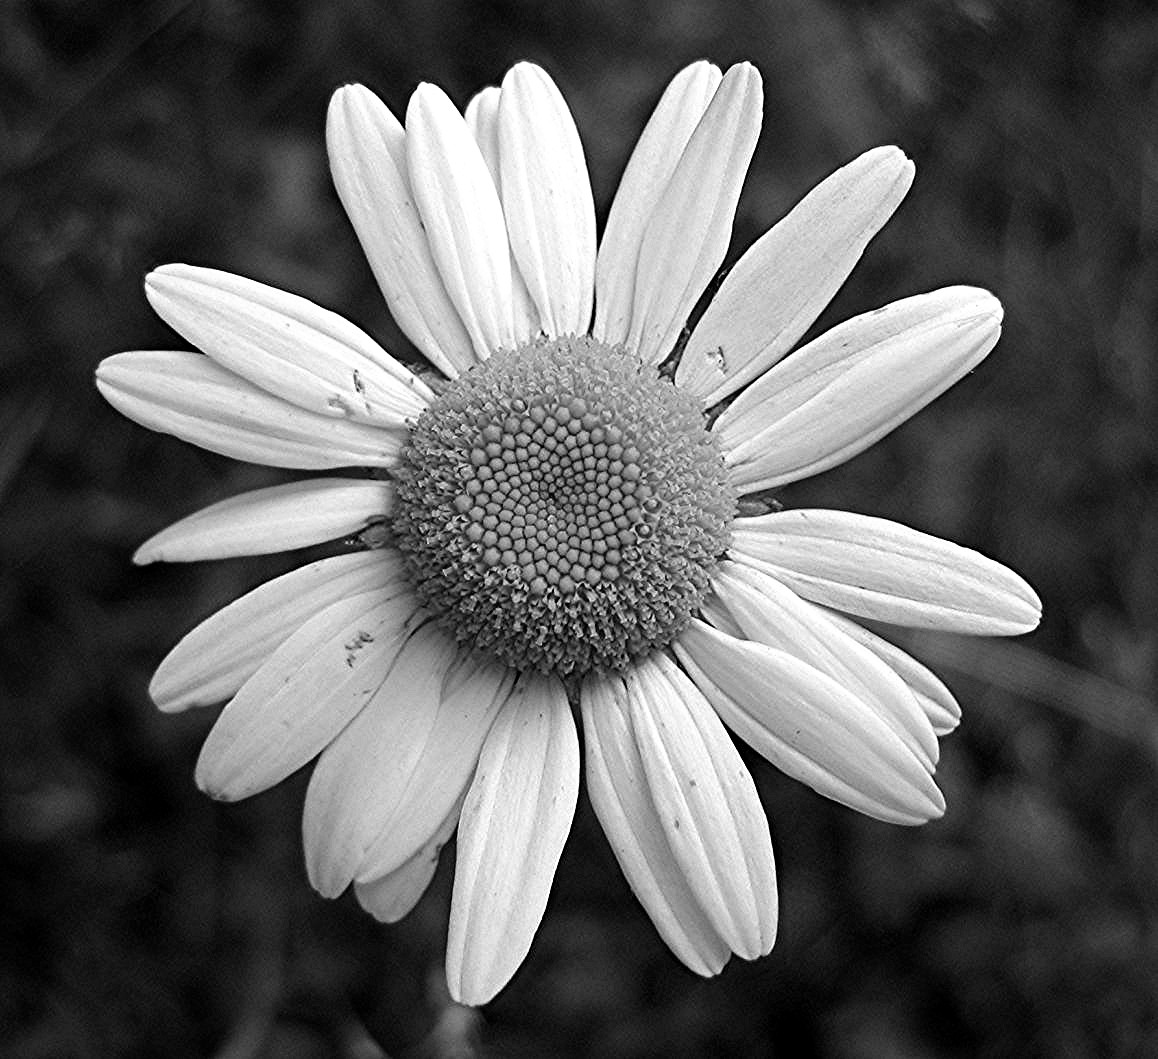 Black and White Flowers Art PPT Backgrounds